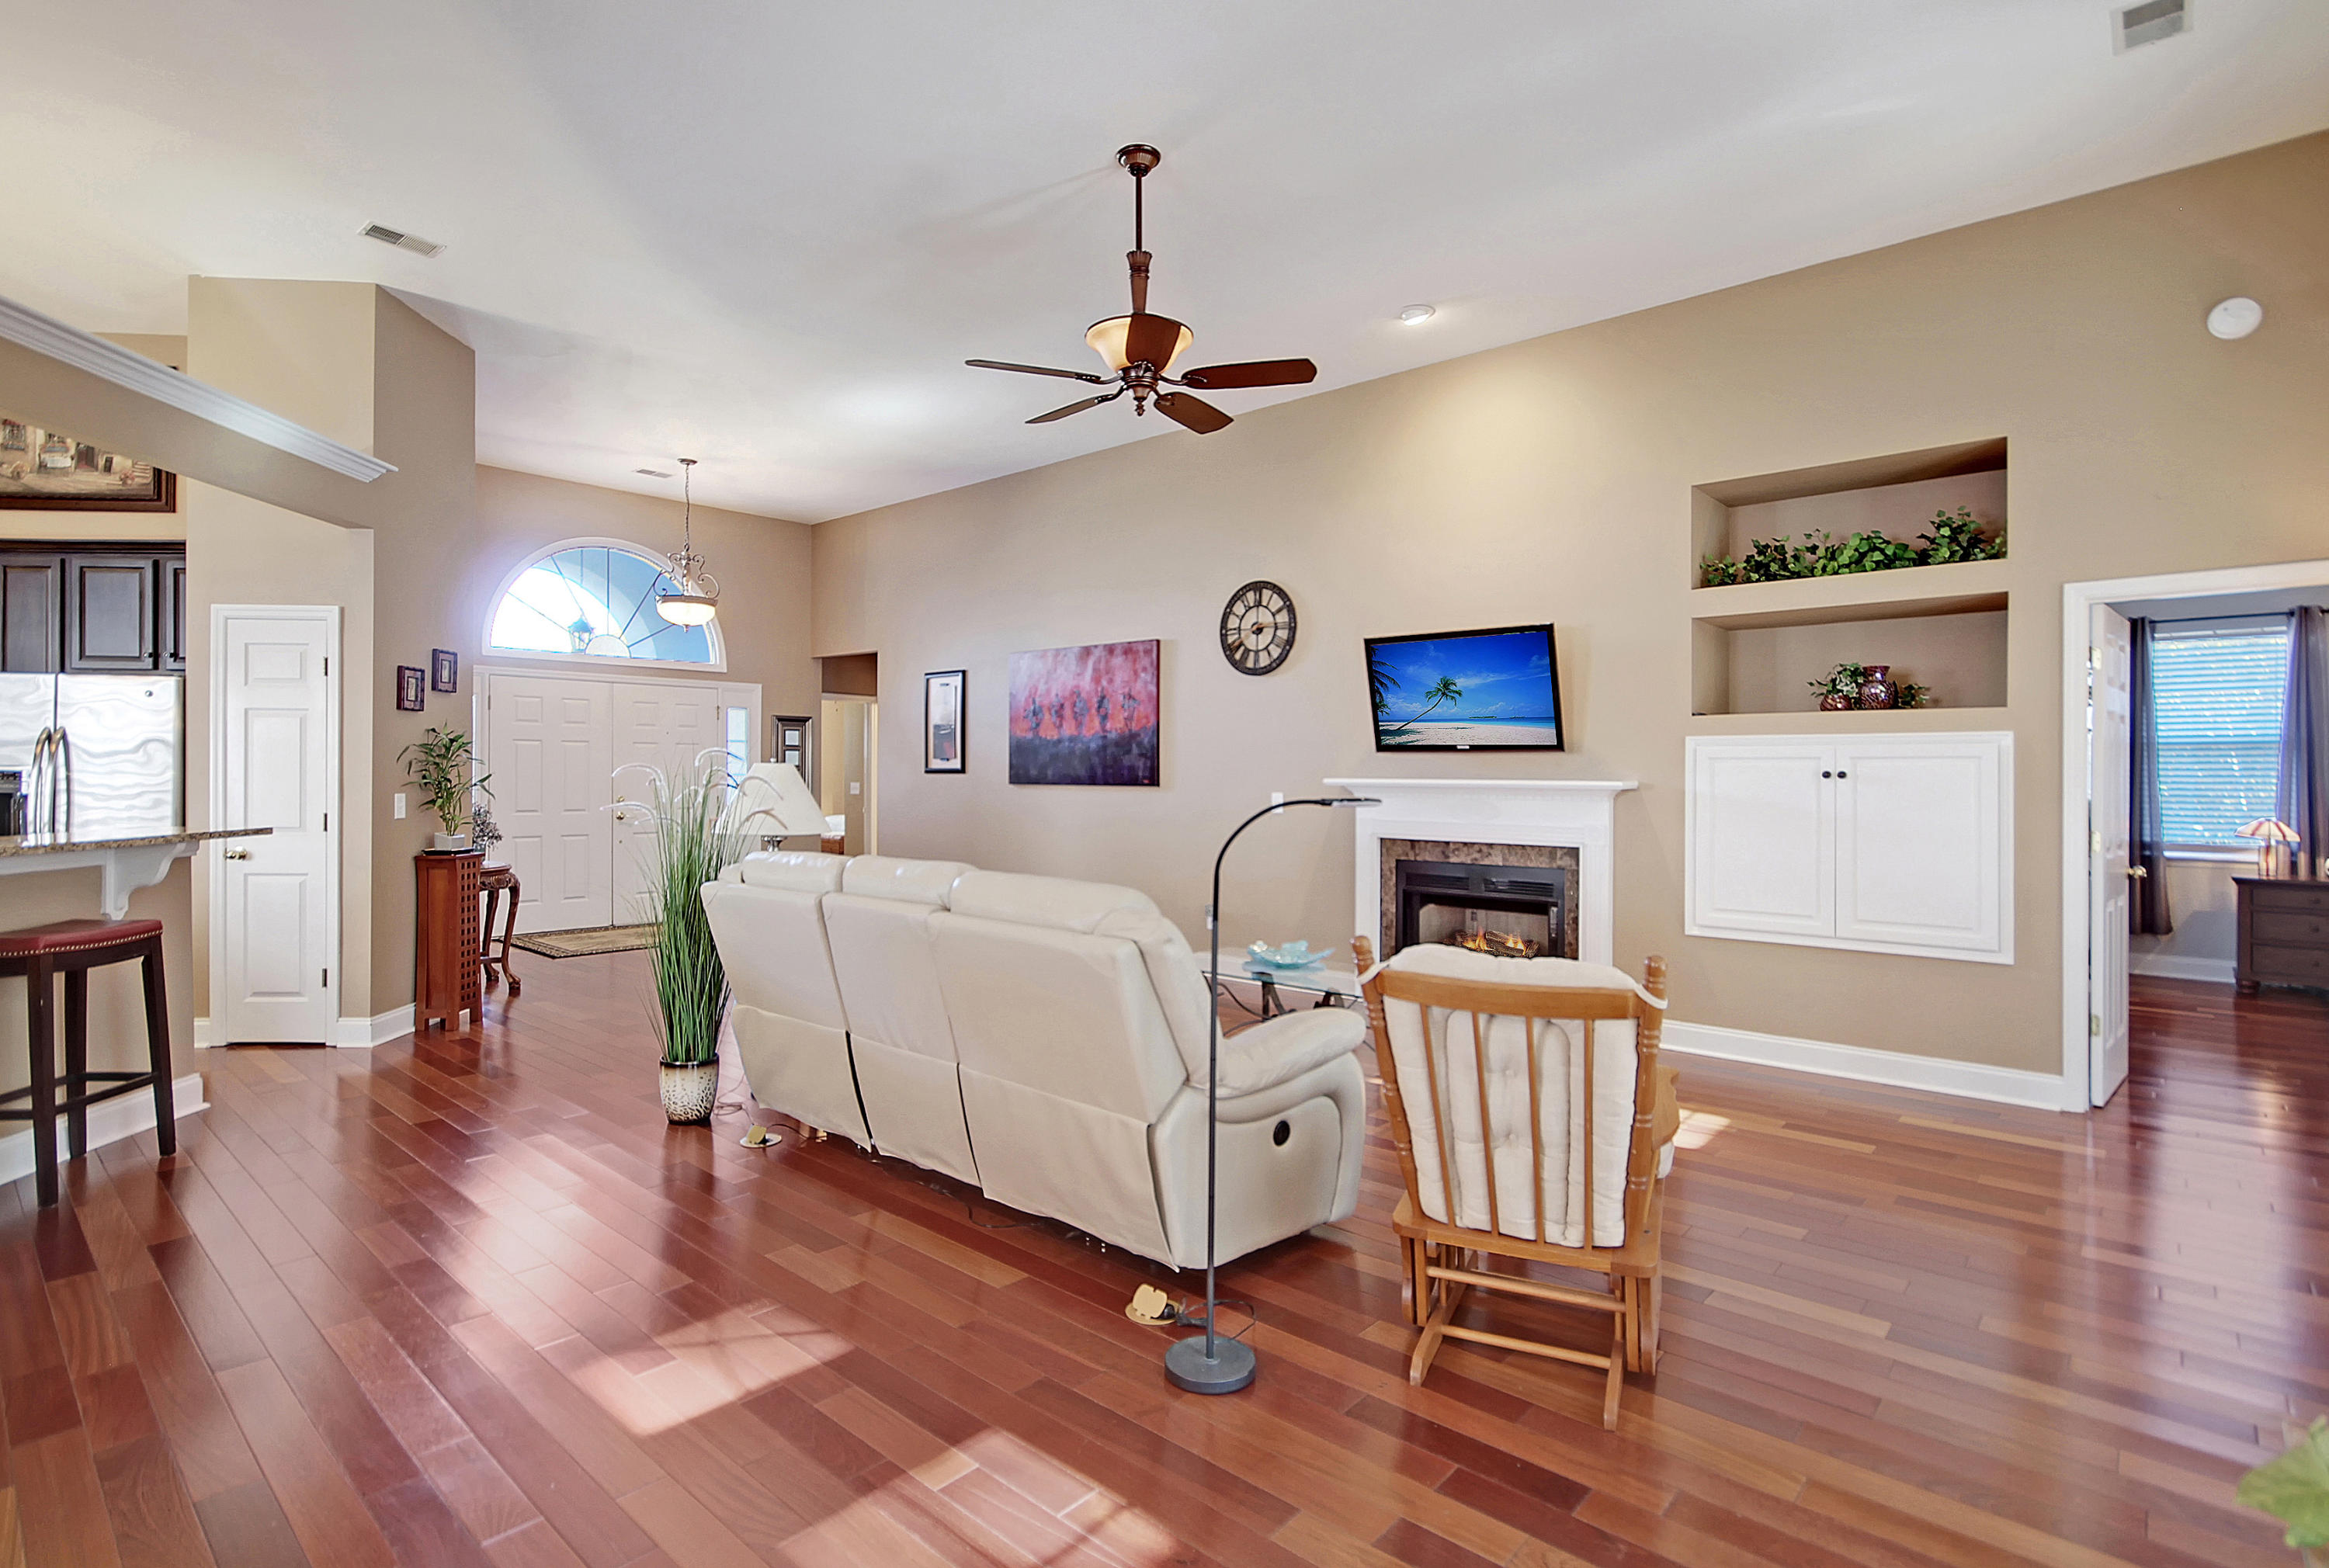 Rivertowne Country Club Homes For Sale - 1868 Great Hope, Mount Pleasant, SC - 20